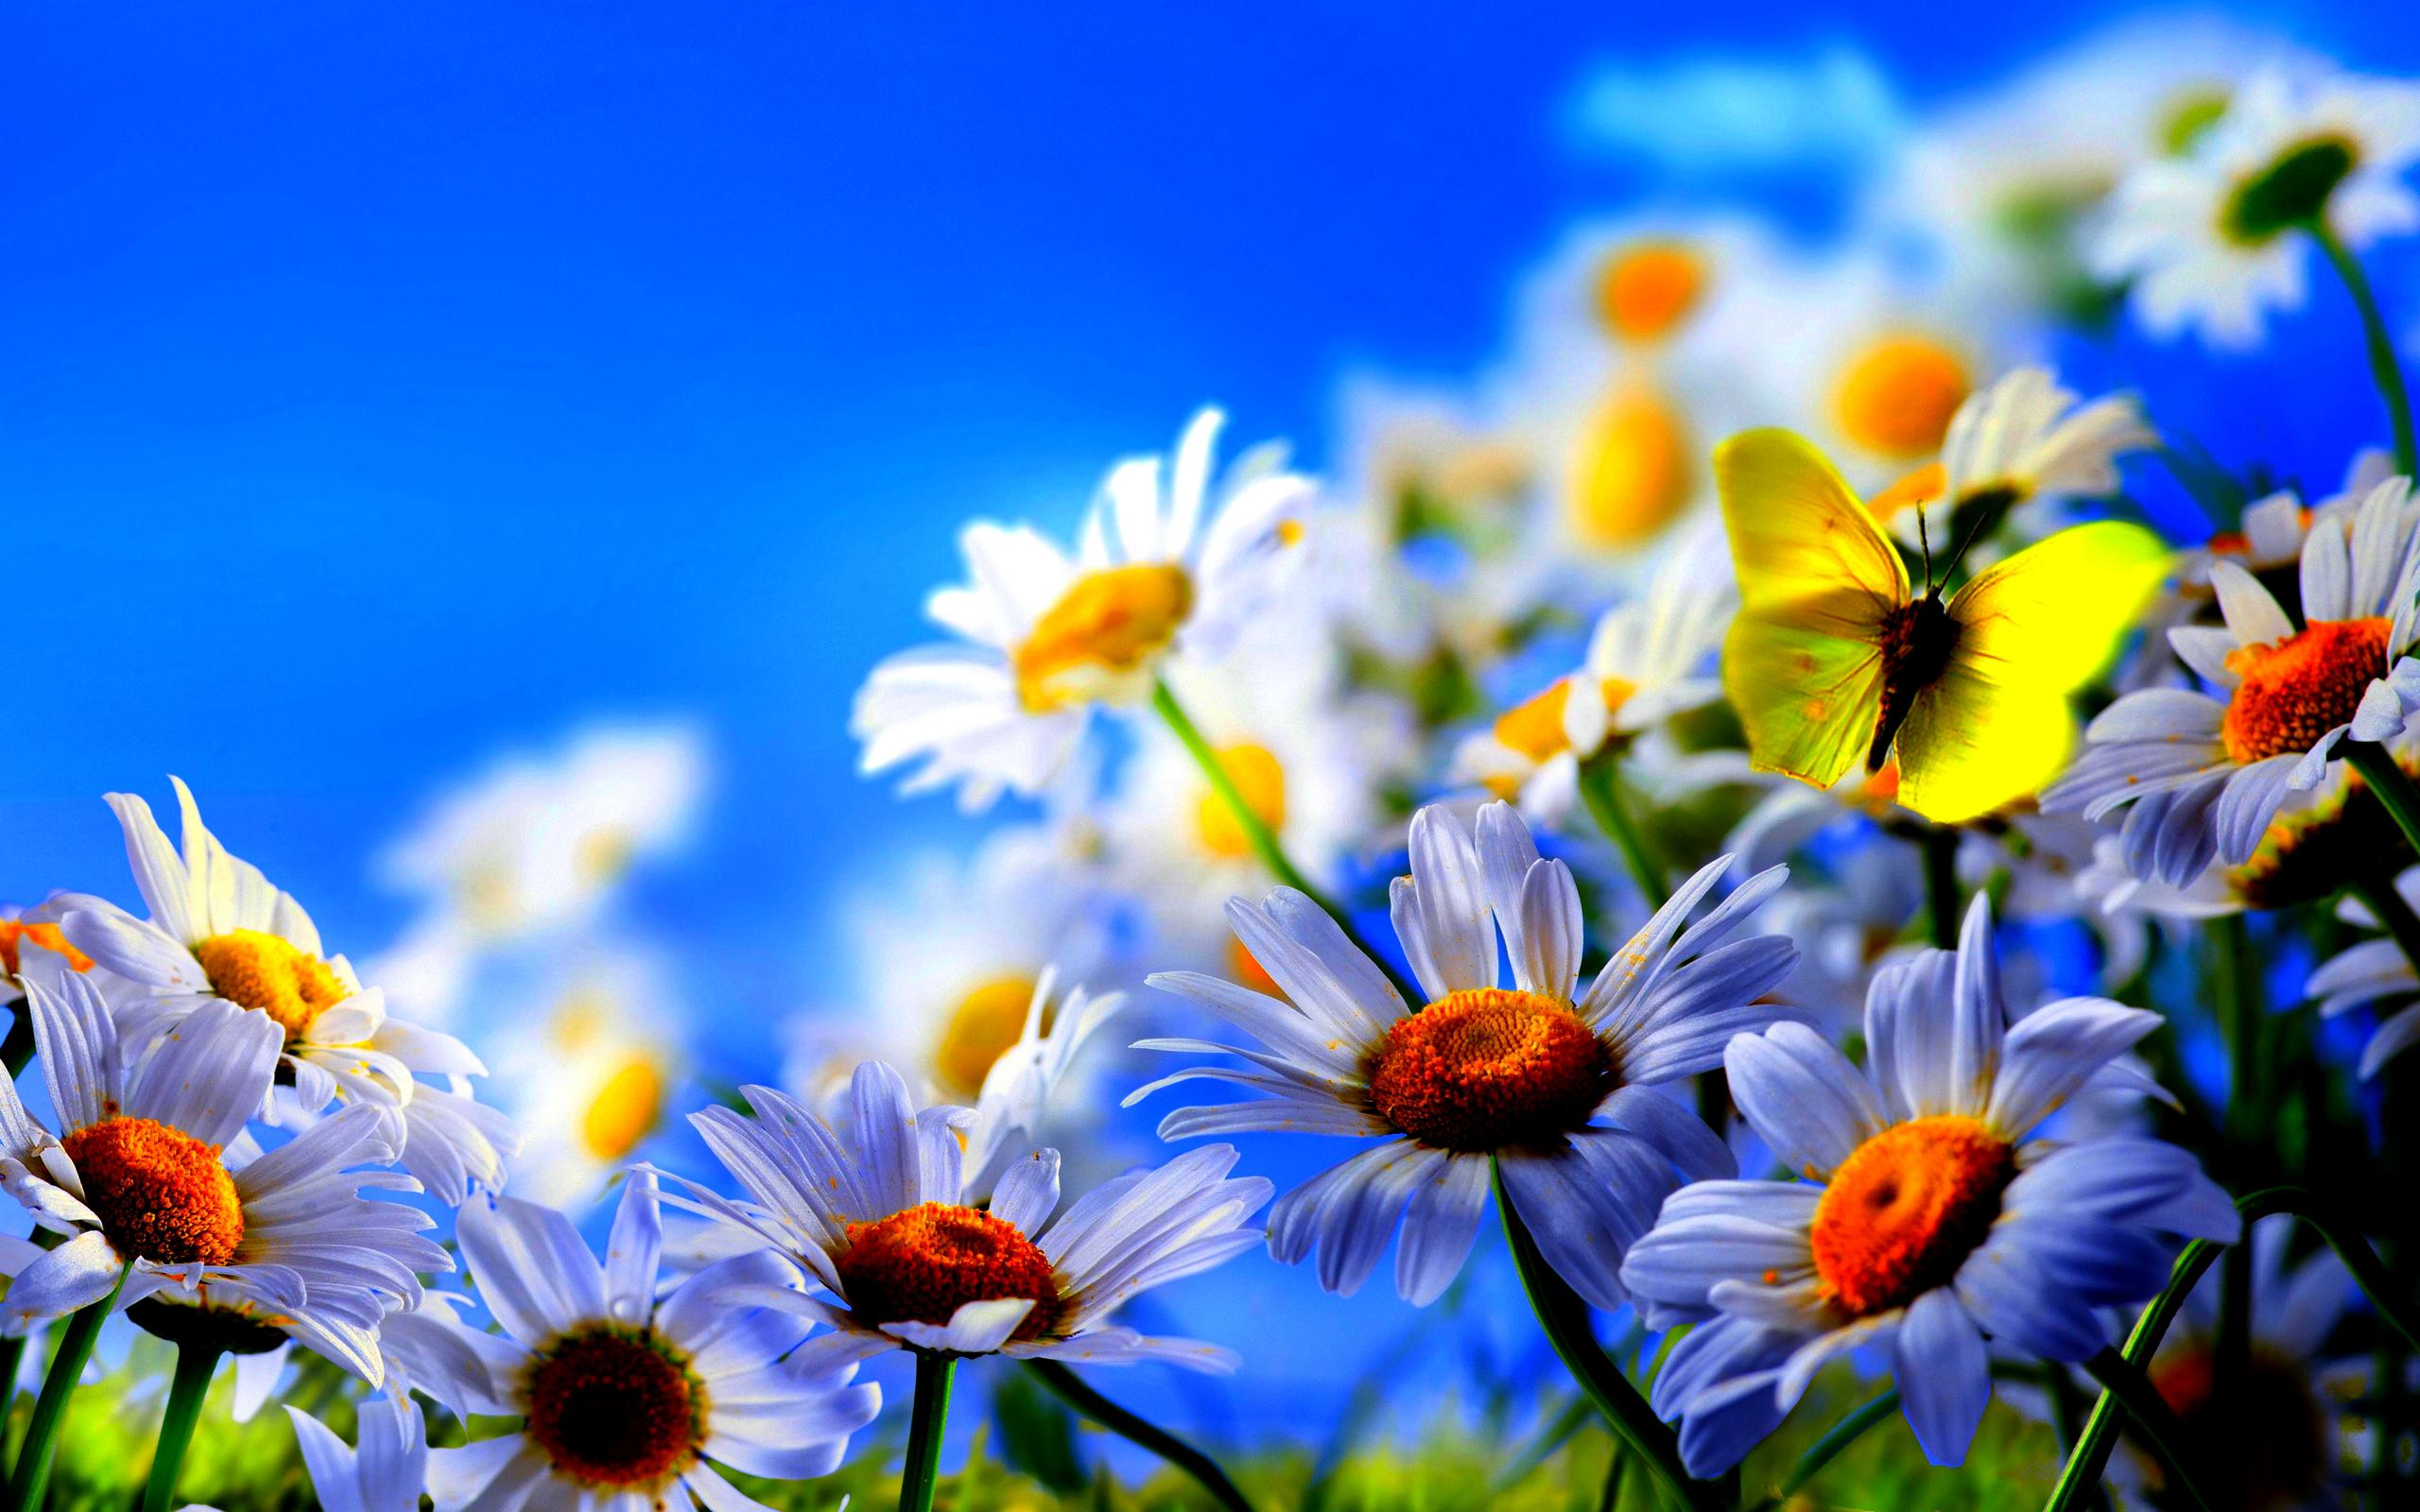 Home Nature Flowers Plants Spring flowers screensavers 2560x1600